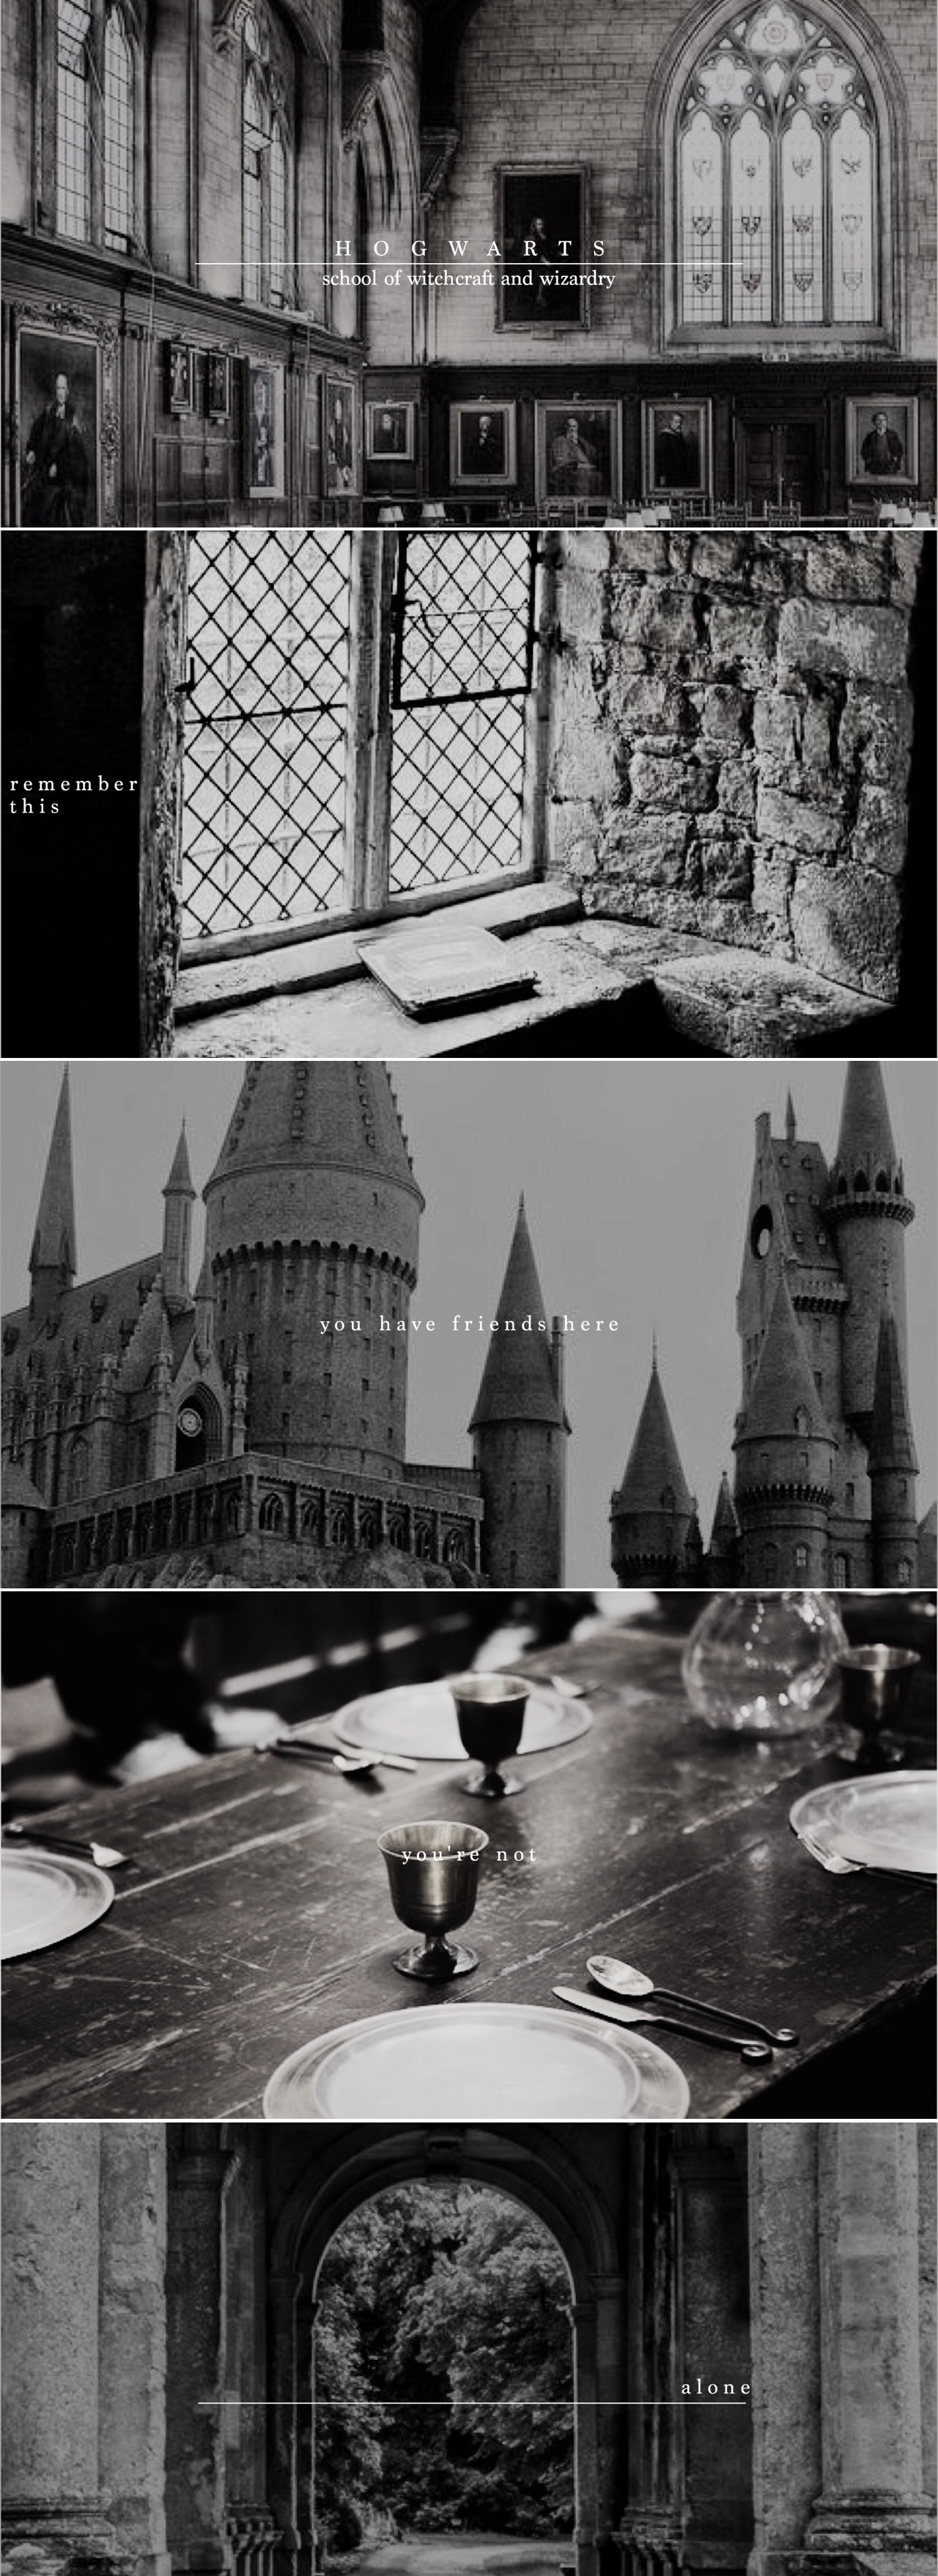 ill never forget the first time i walked through those doors. #hp